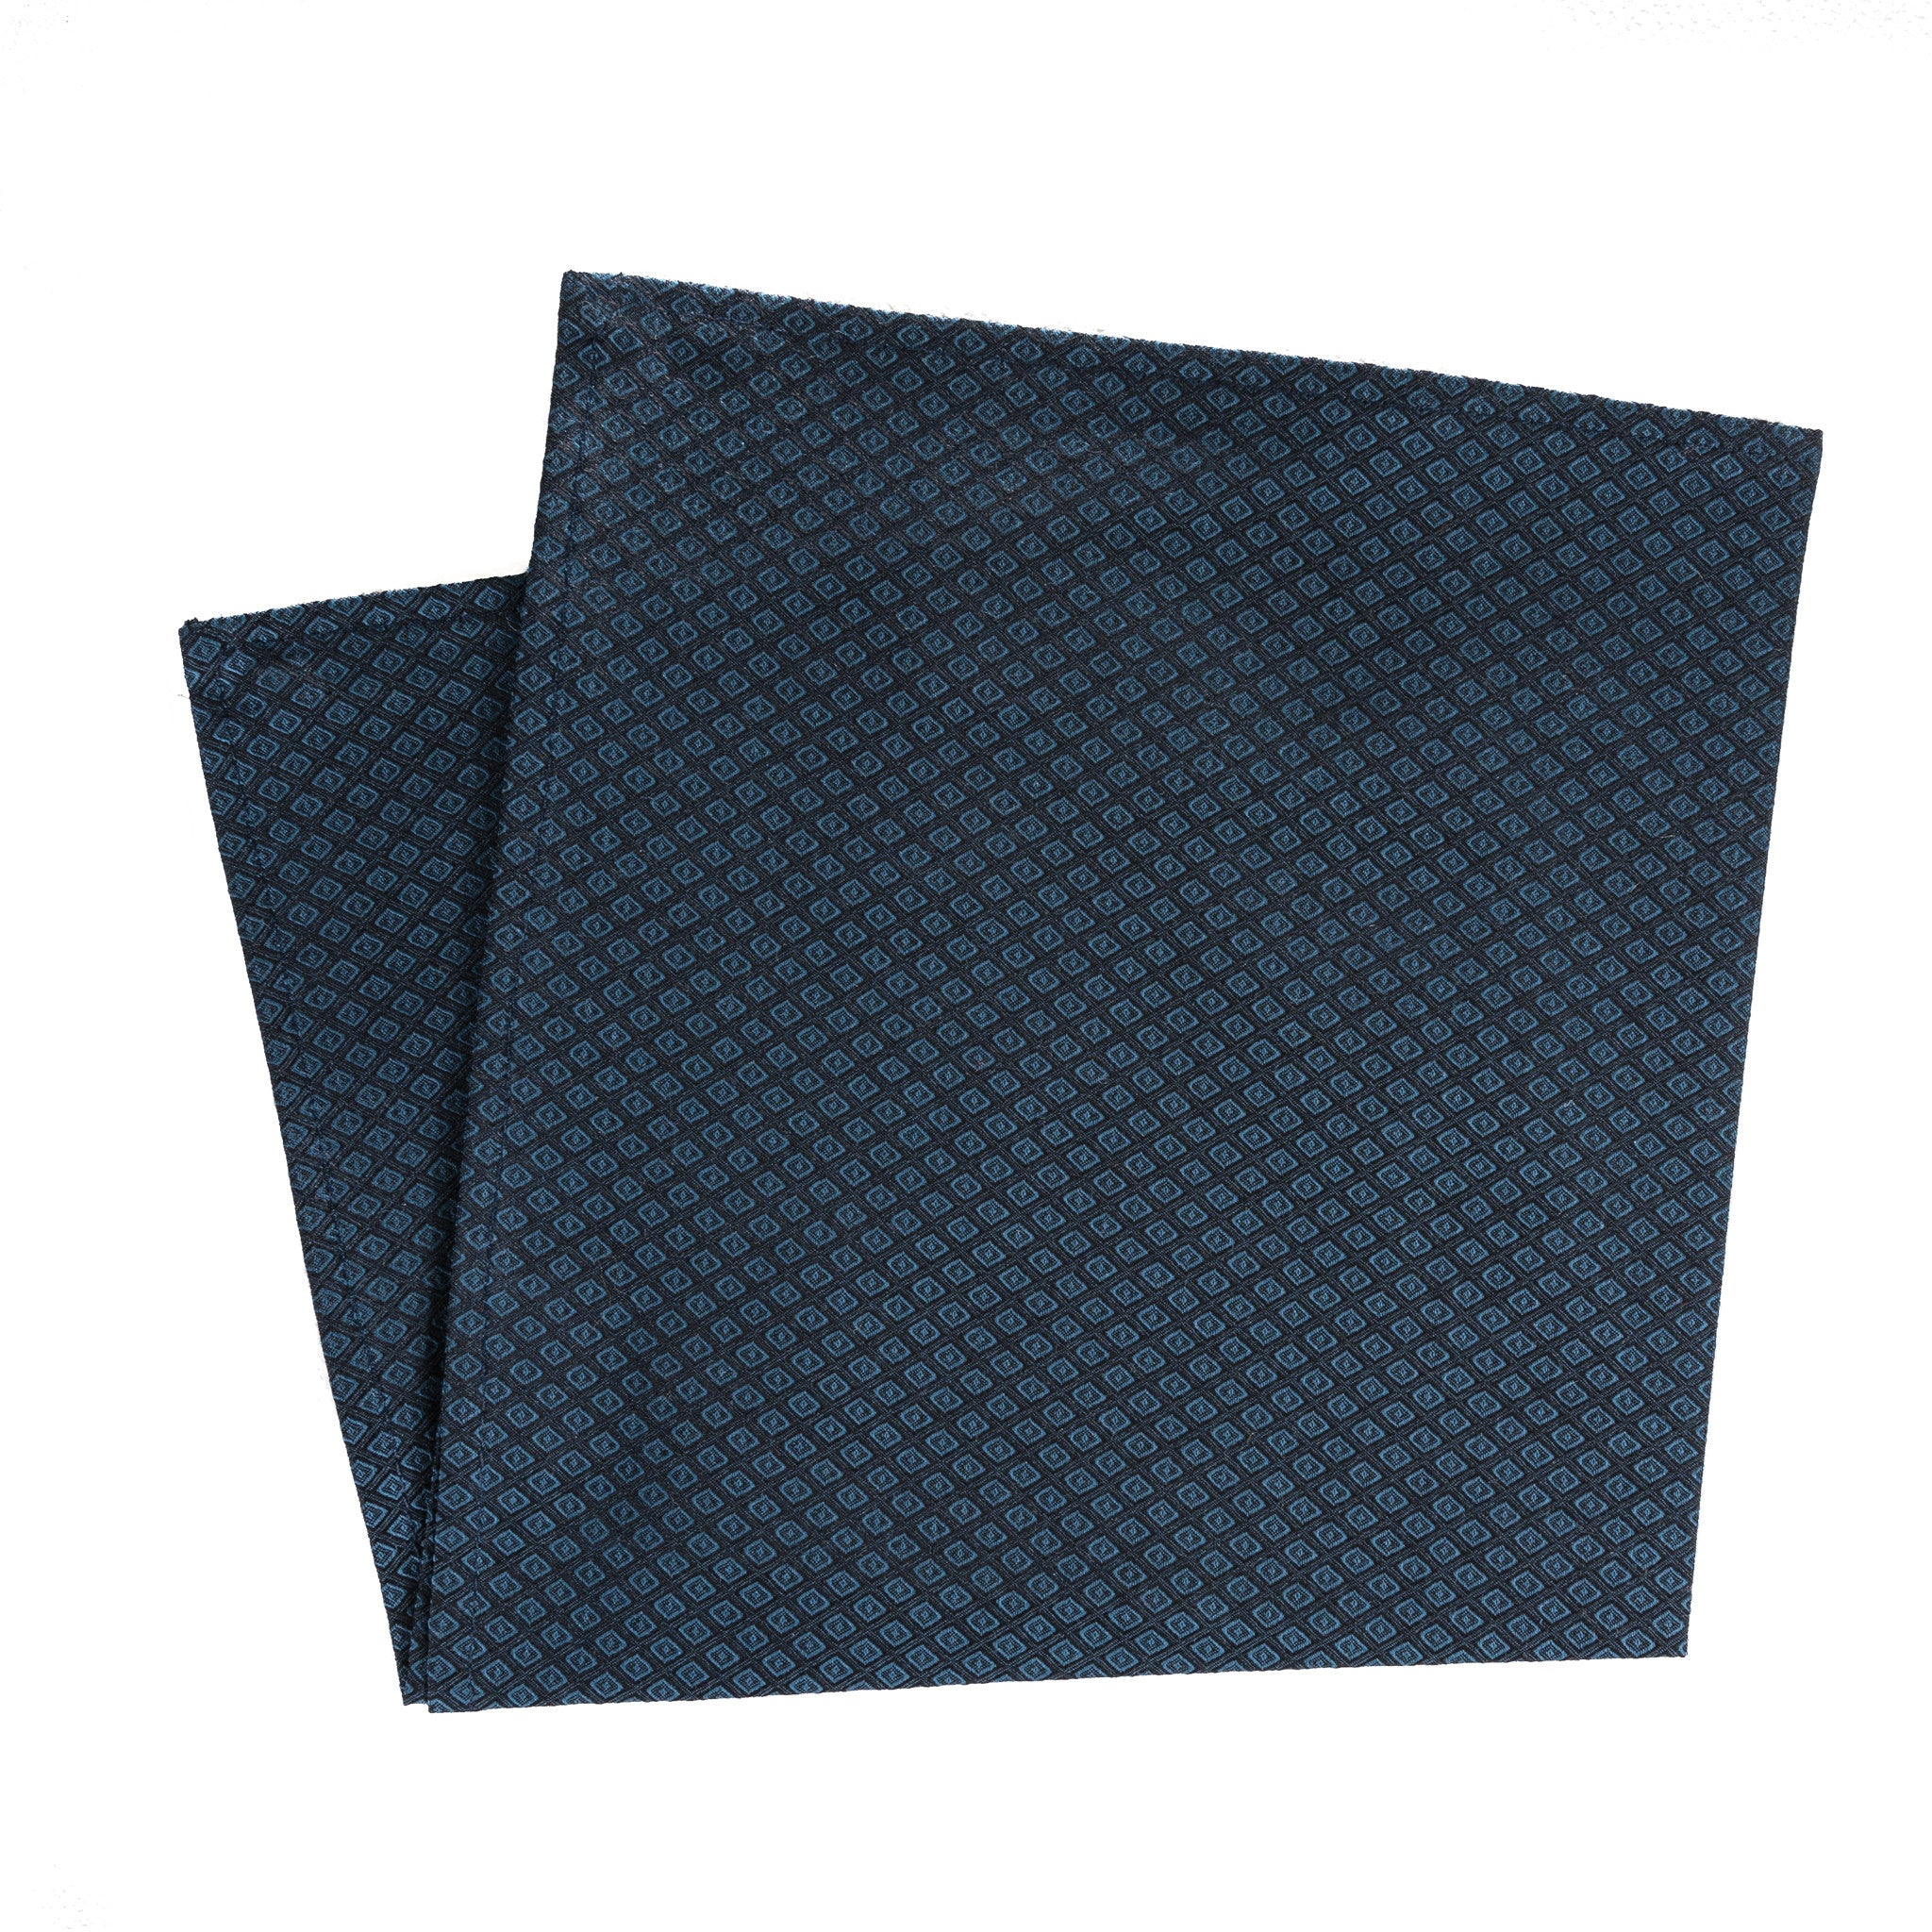 Dot-in-Diamond Grid Pocket Square (additional colors available)